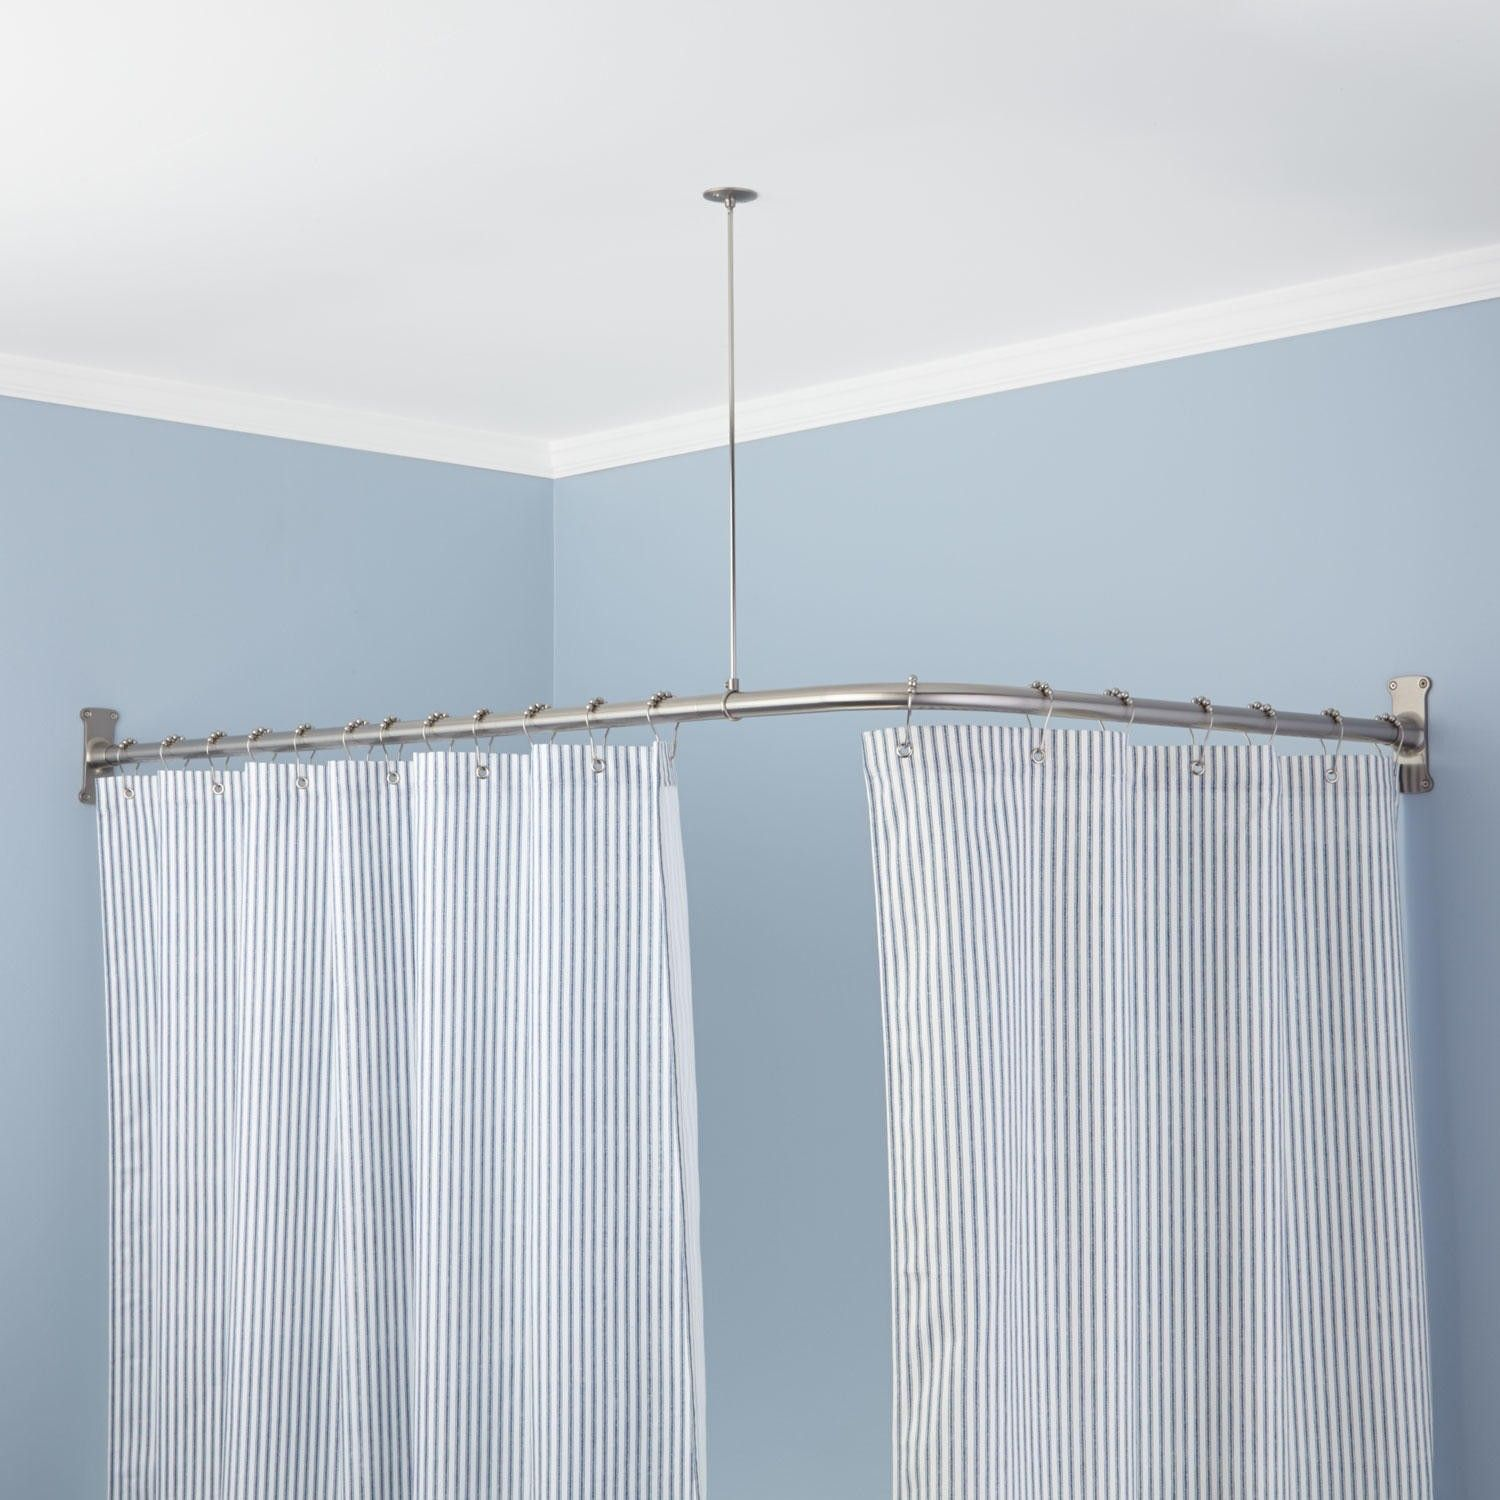 Extendable Shower Curtain Rod Extra Heavy Corner Shower Curtain Rod In Powder Black For The